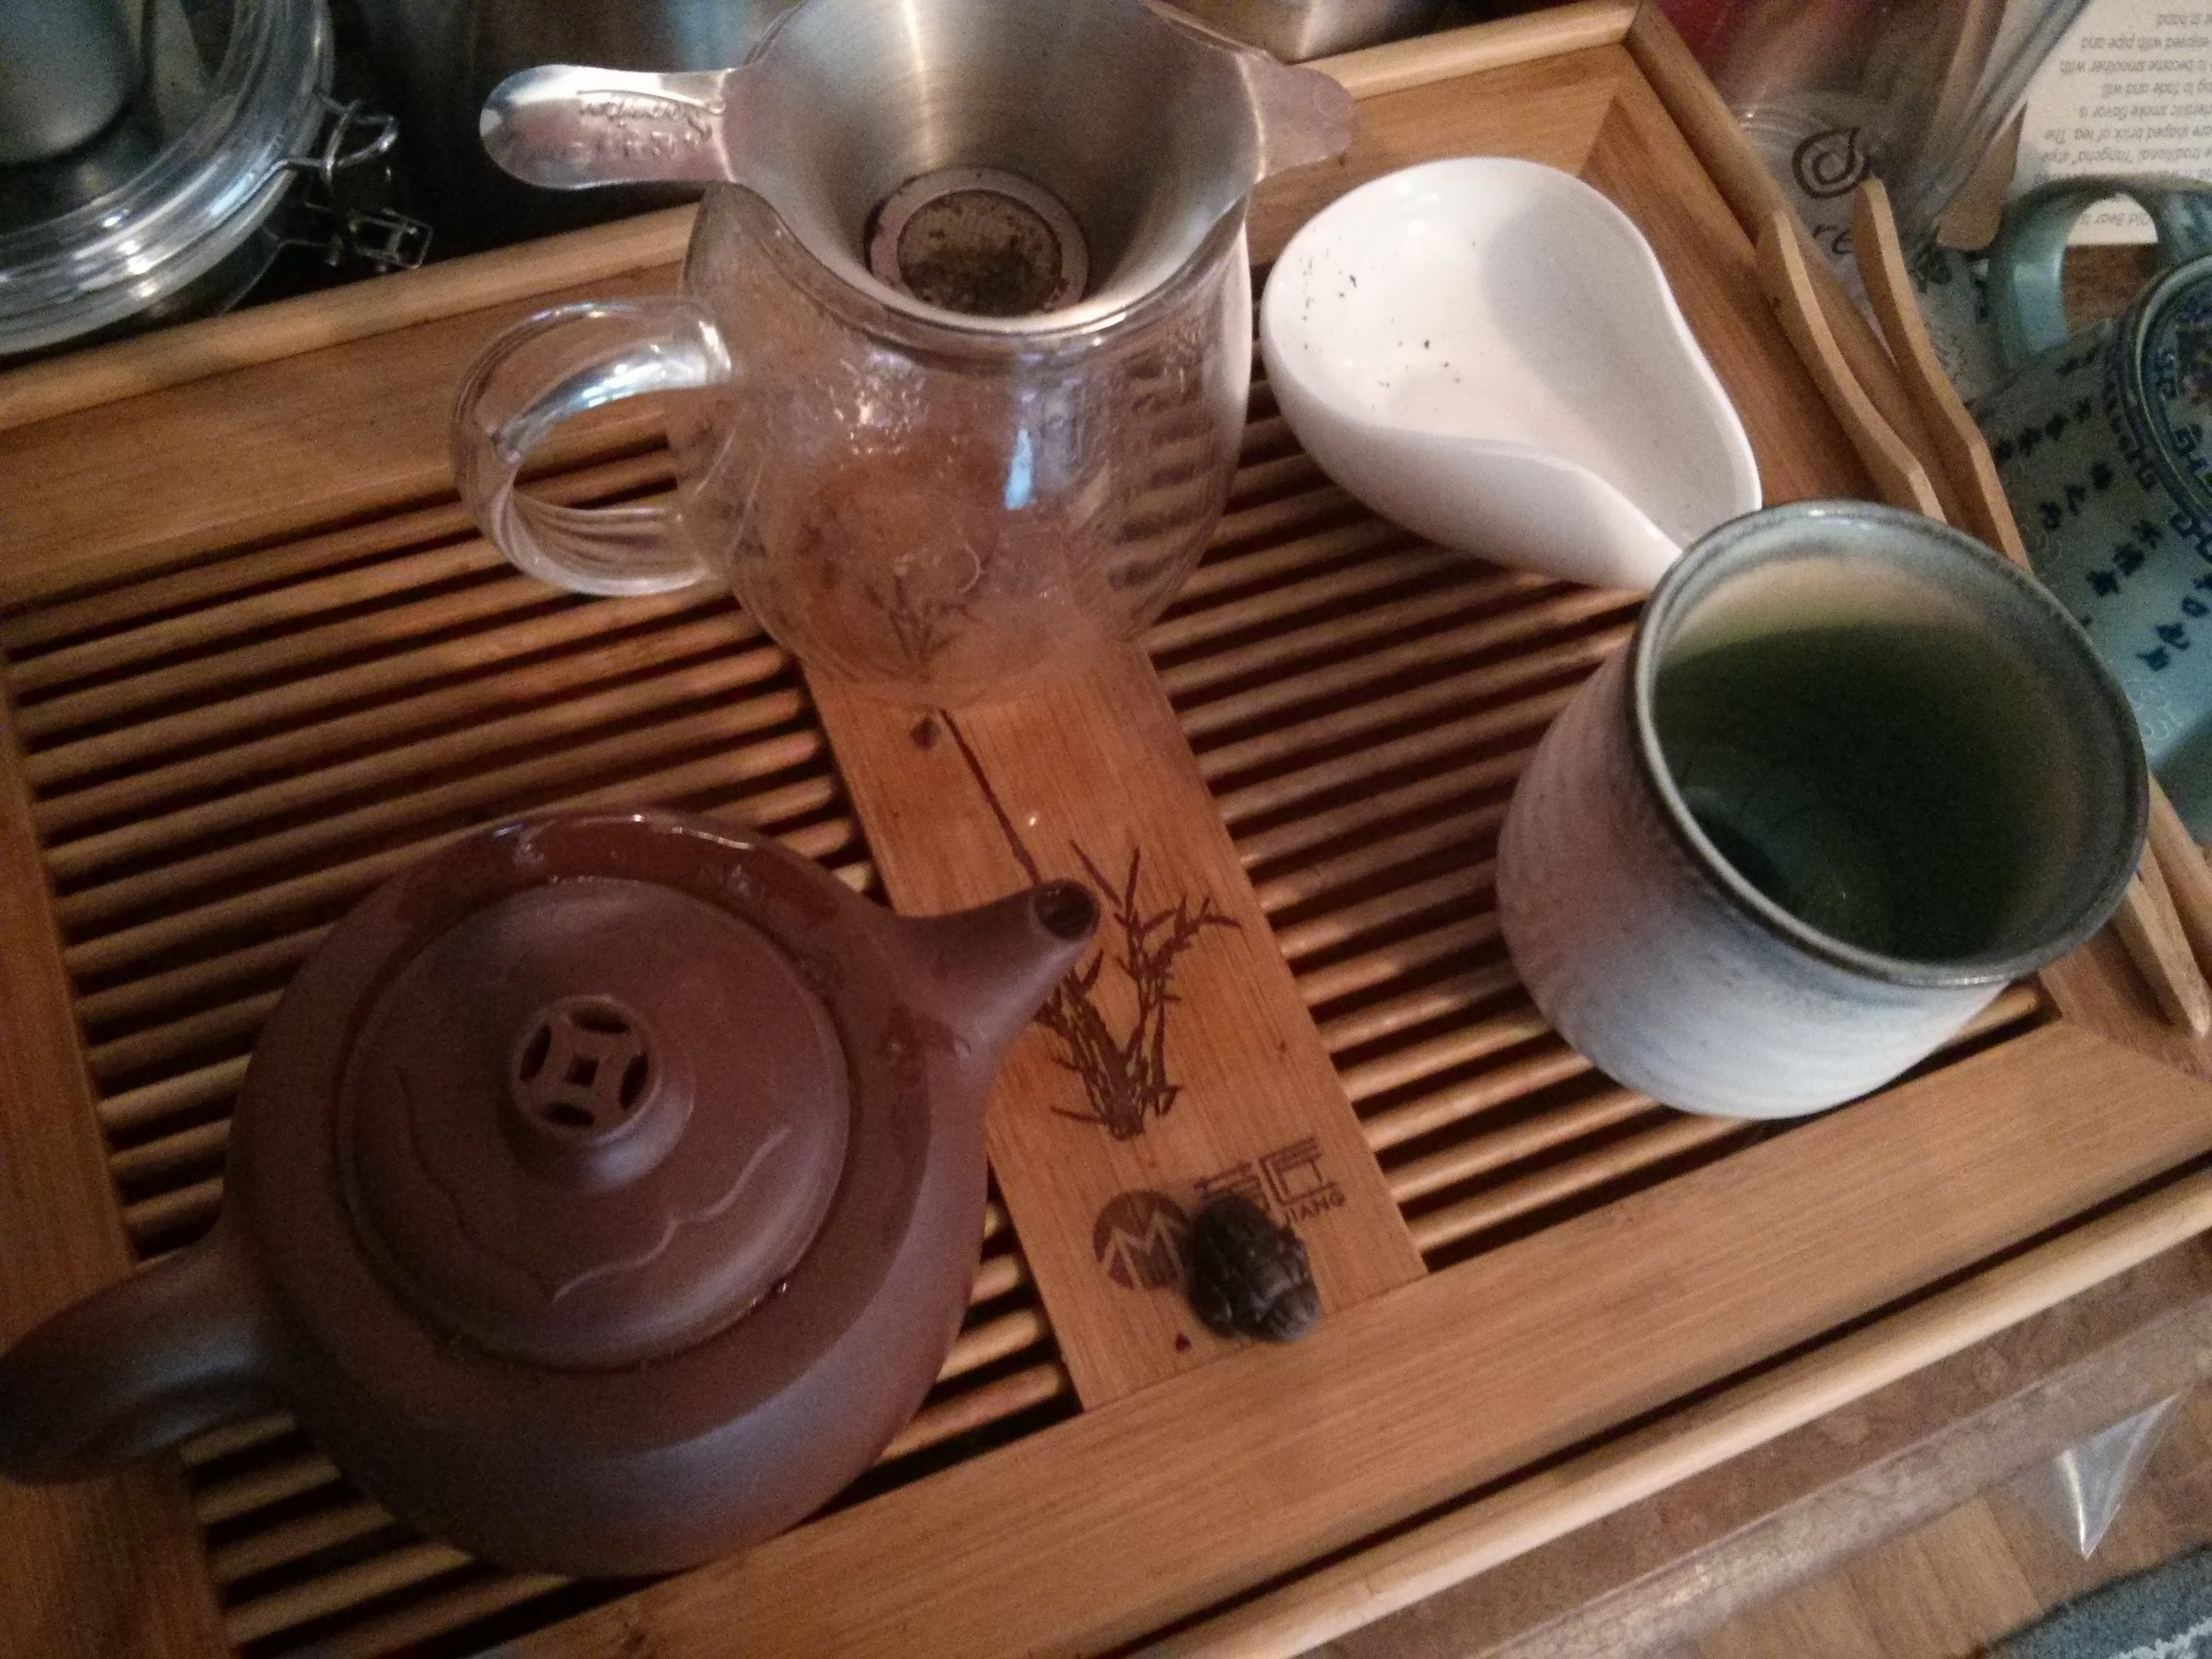 Yixing pot with rinse in 200F water. For the first session I flash brewed, but I would definitely recommend a 30 second steeping as this tea brews lightly.